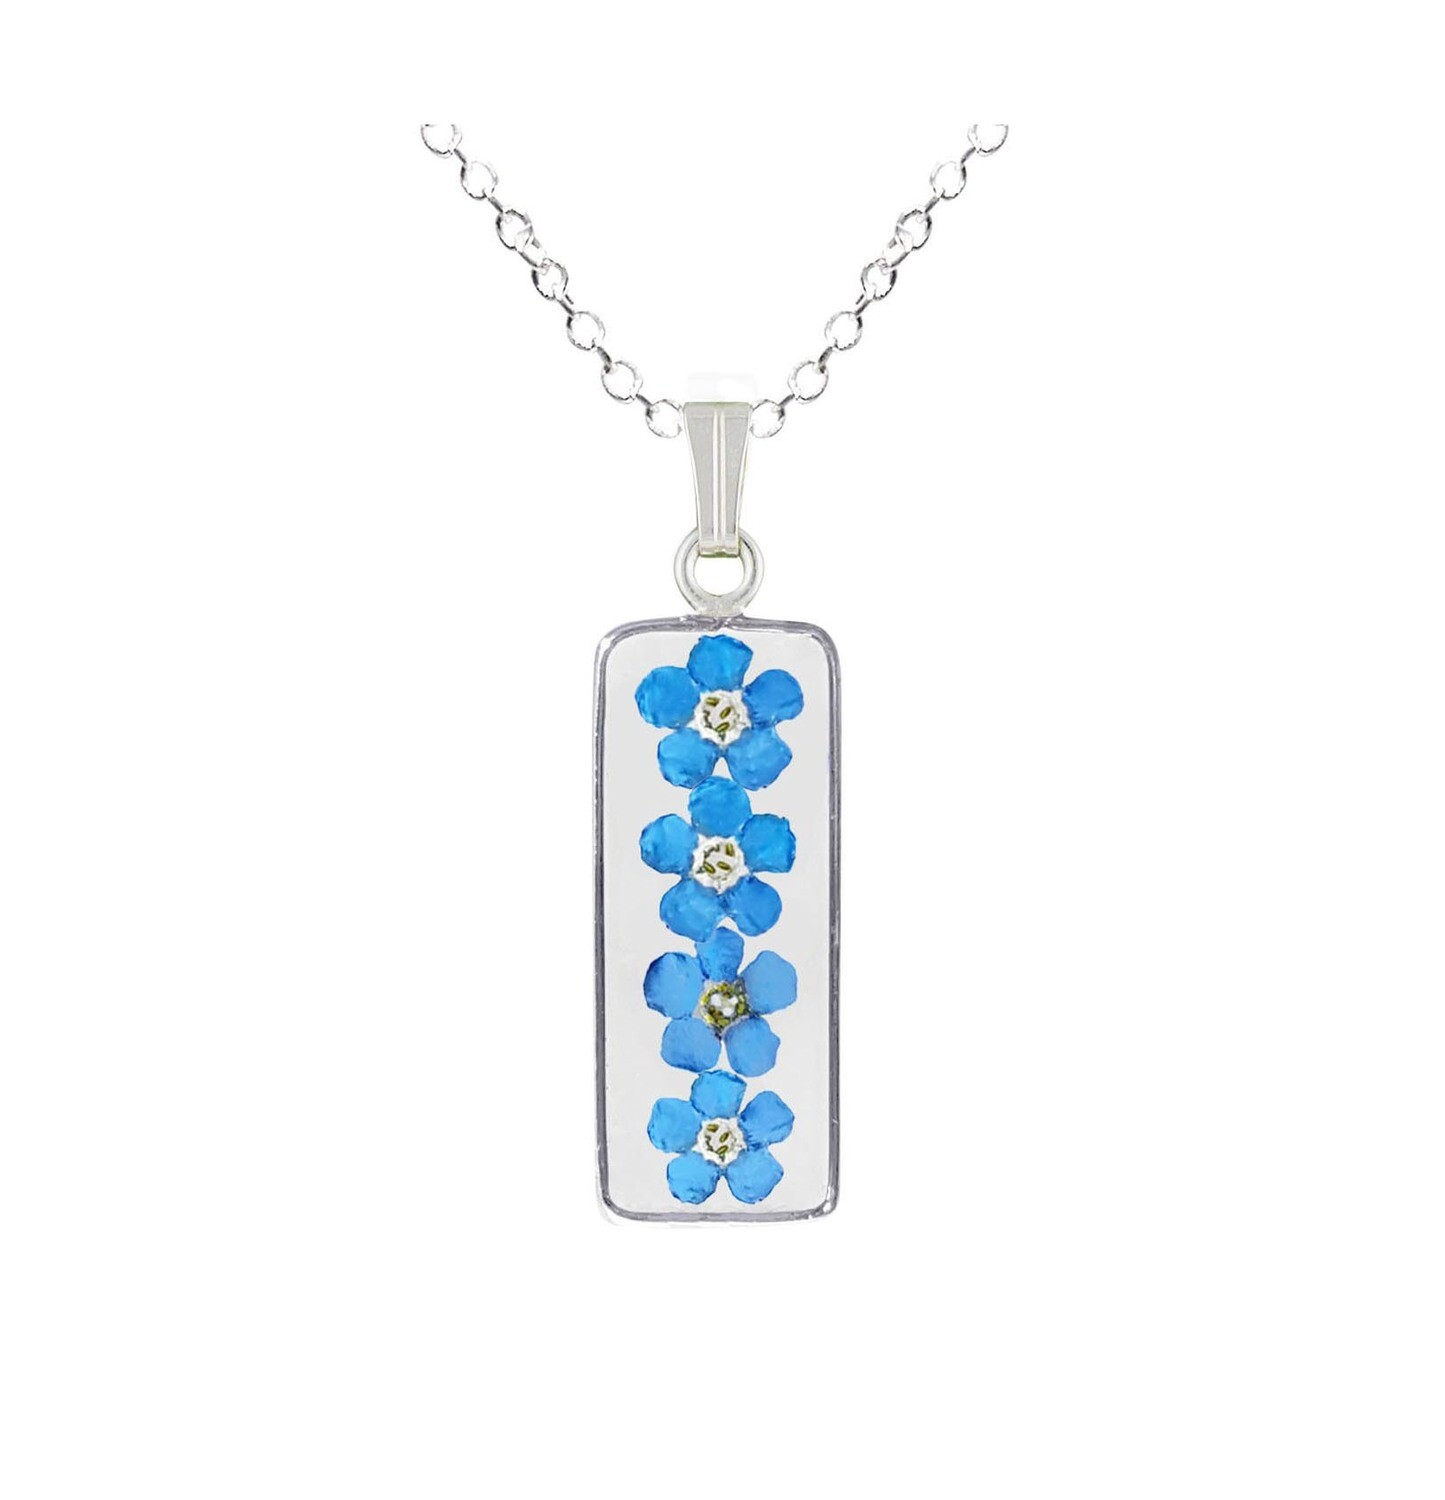 Forget-Me-Not Necklace, Medium Rectangle, Transparent